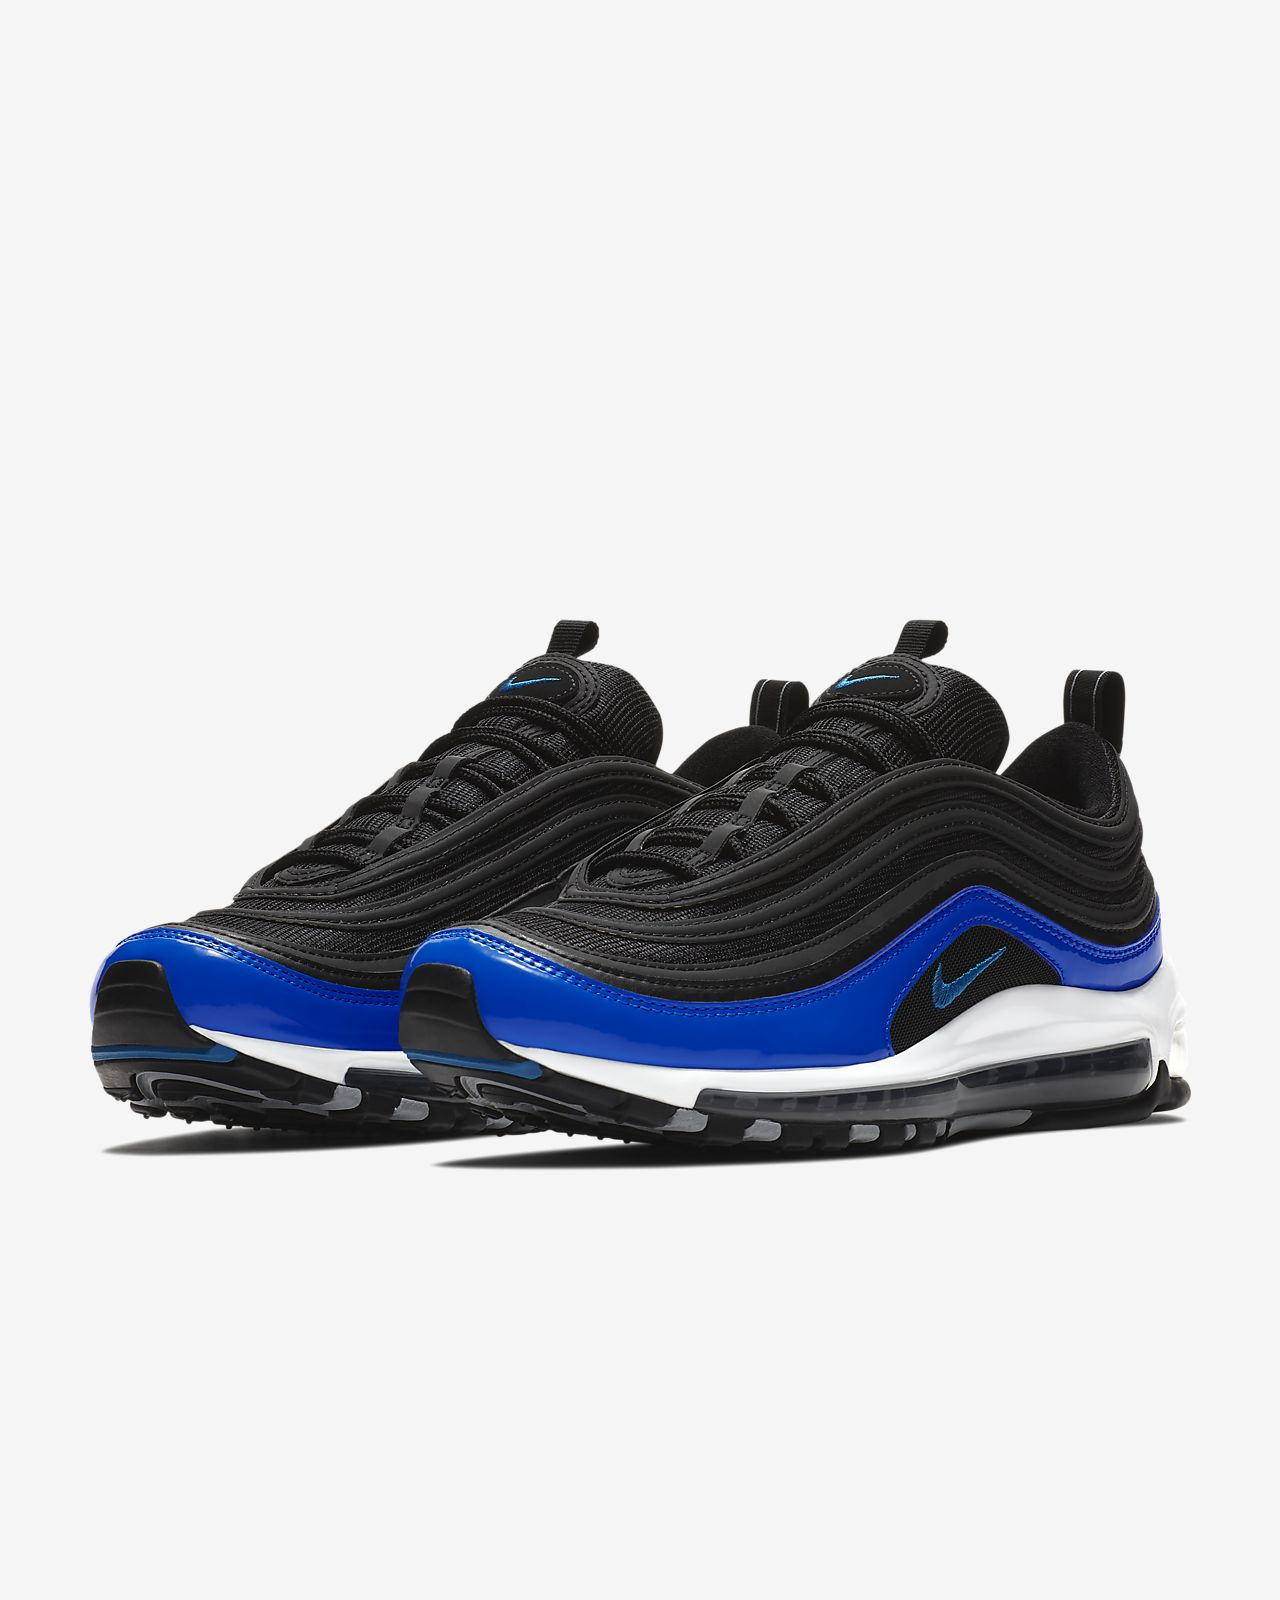 Nike Air Max 95 Essential Trooper 749766 201